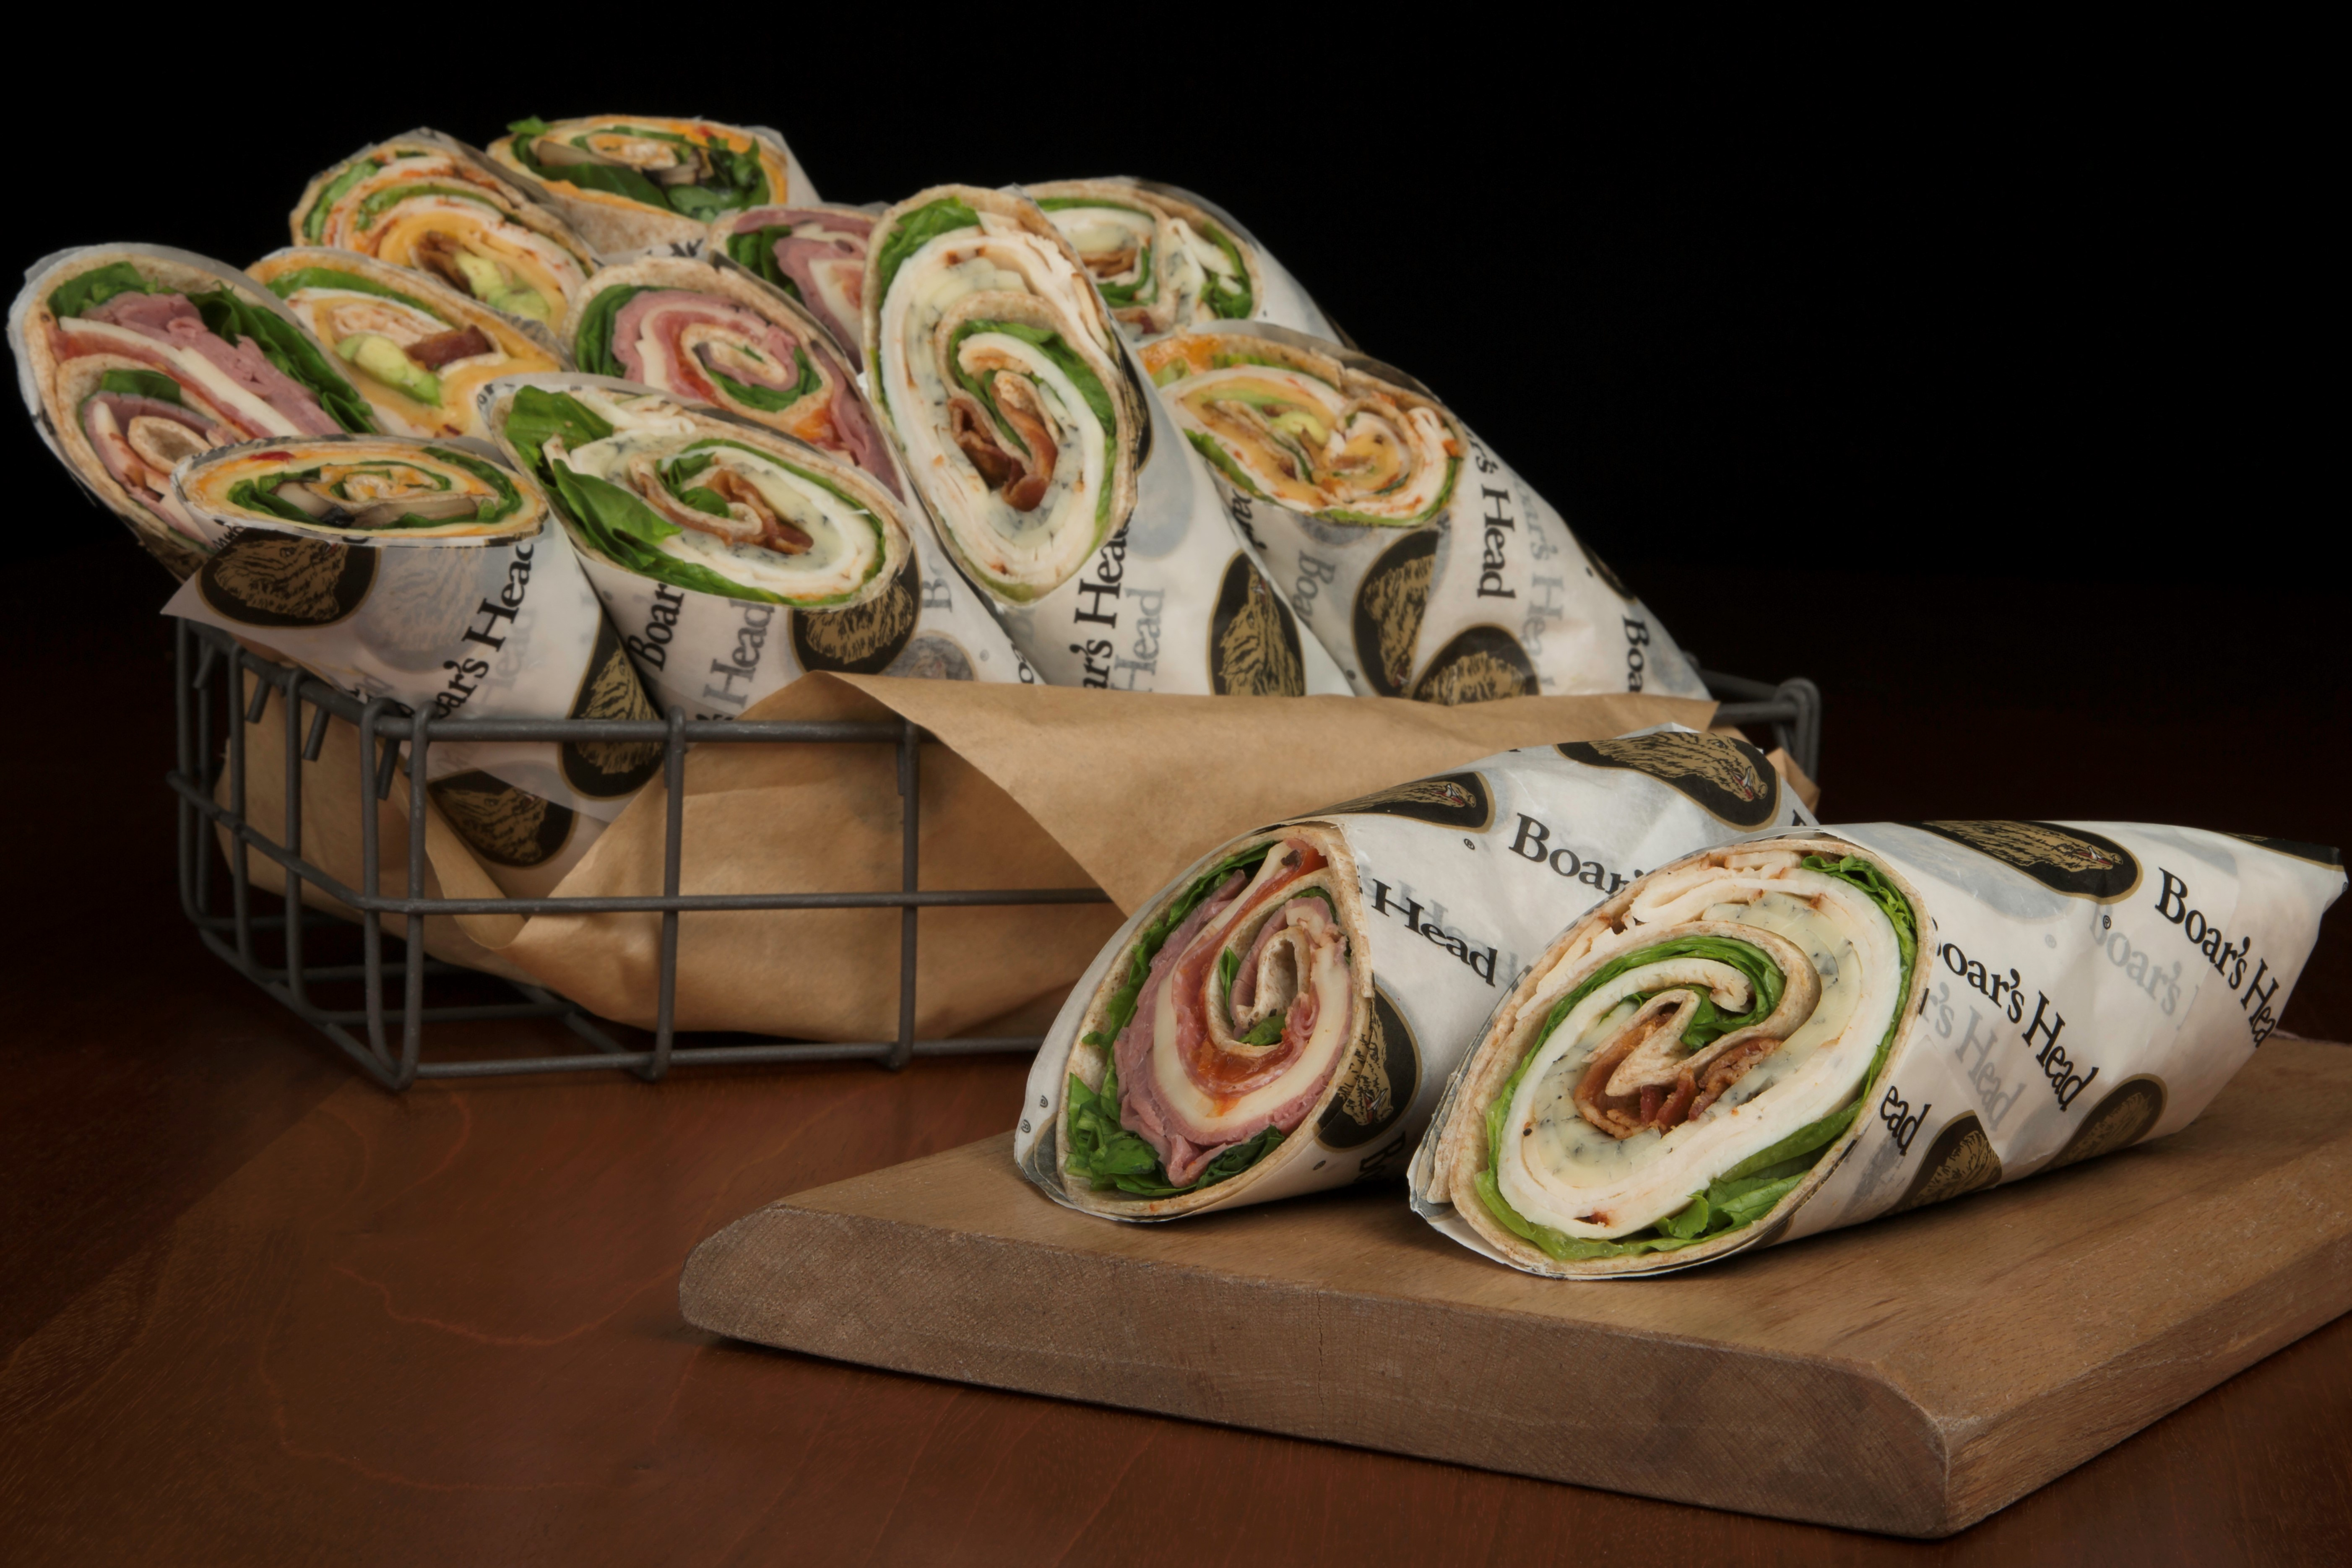 Sandwiches & Wraps category